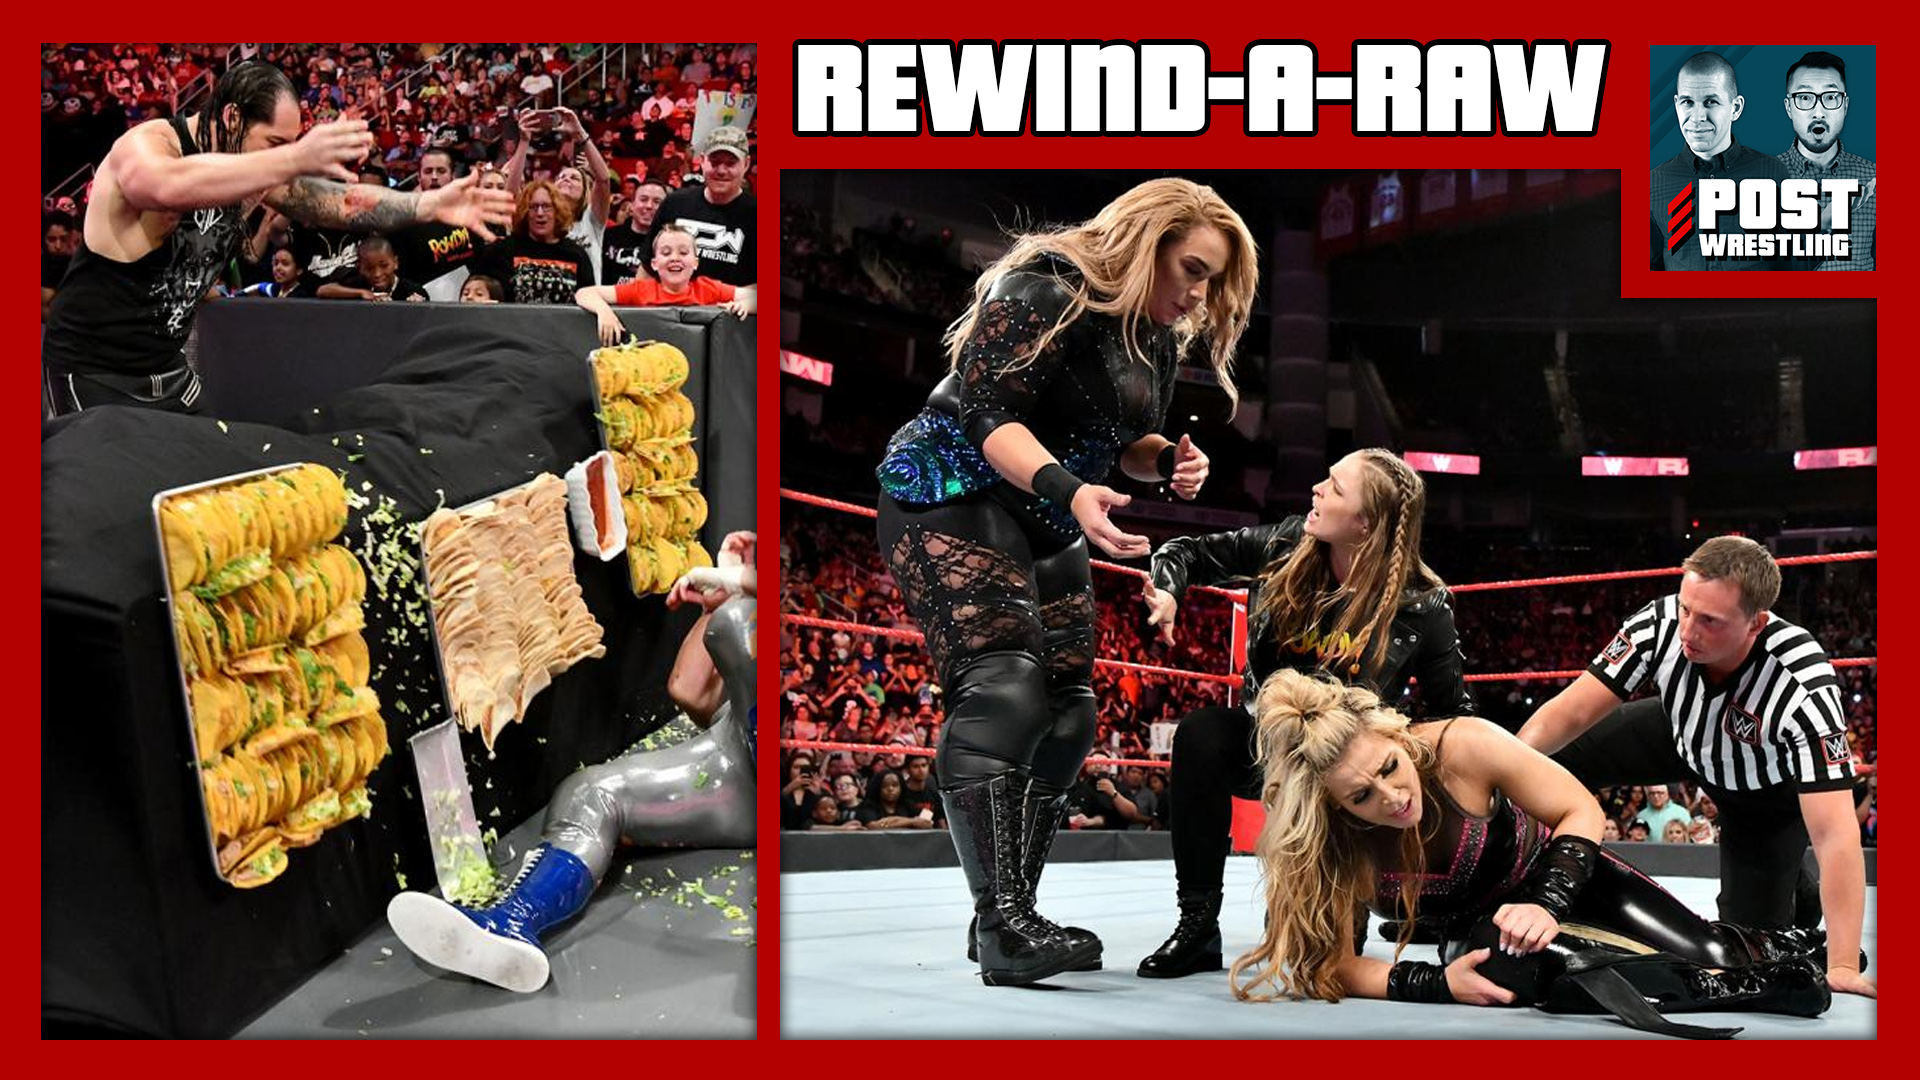 REWIND-A-RAW 6/4/18: This was a bad show.